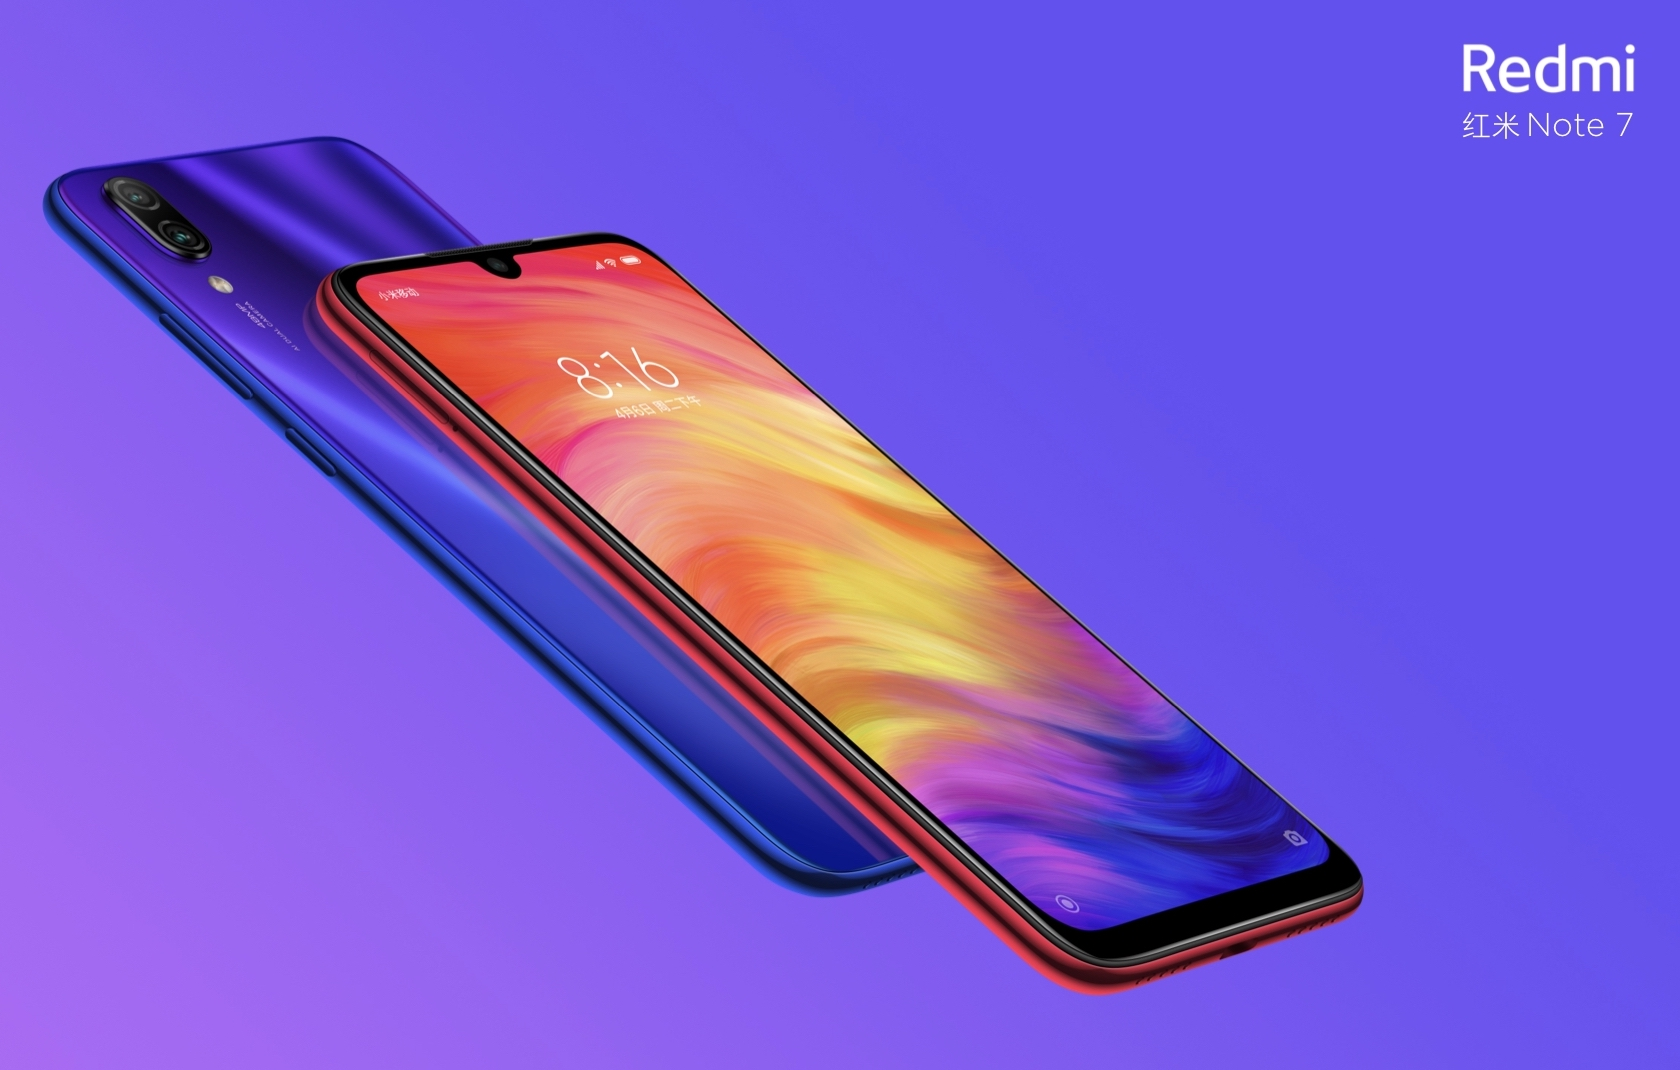 Redmi Note 7 launched